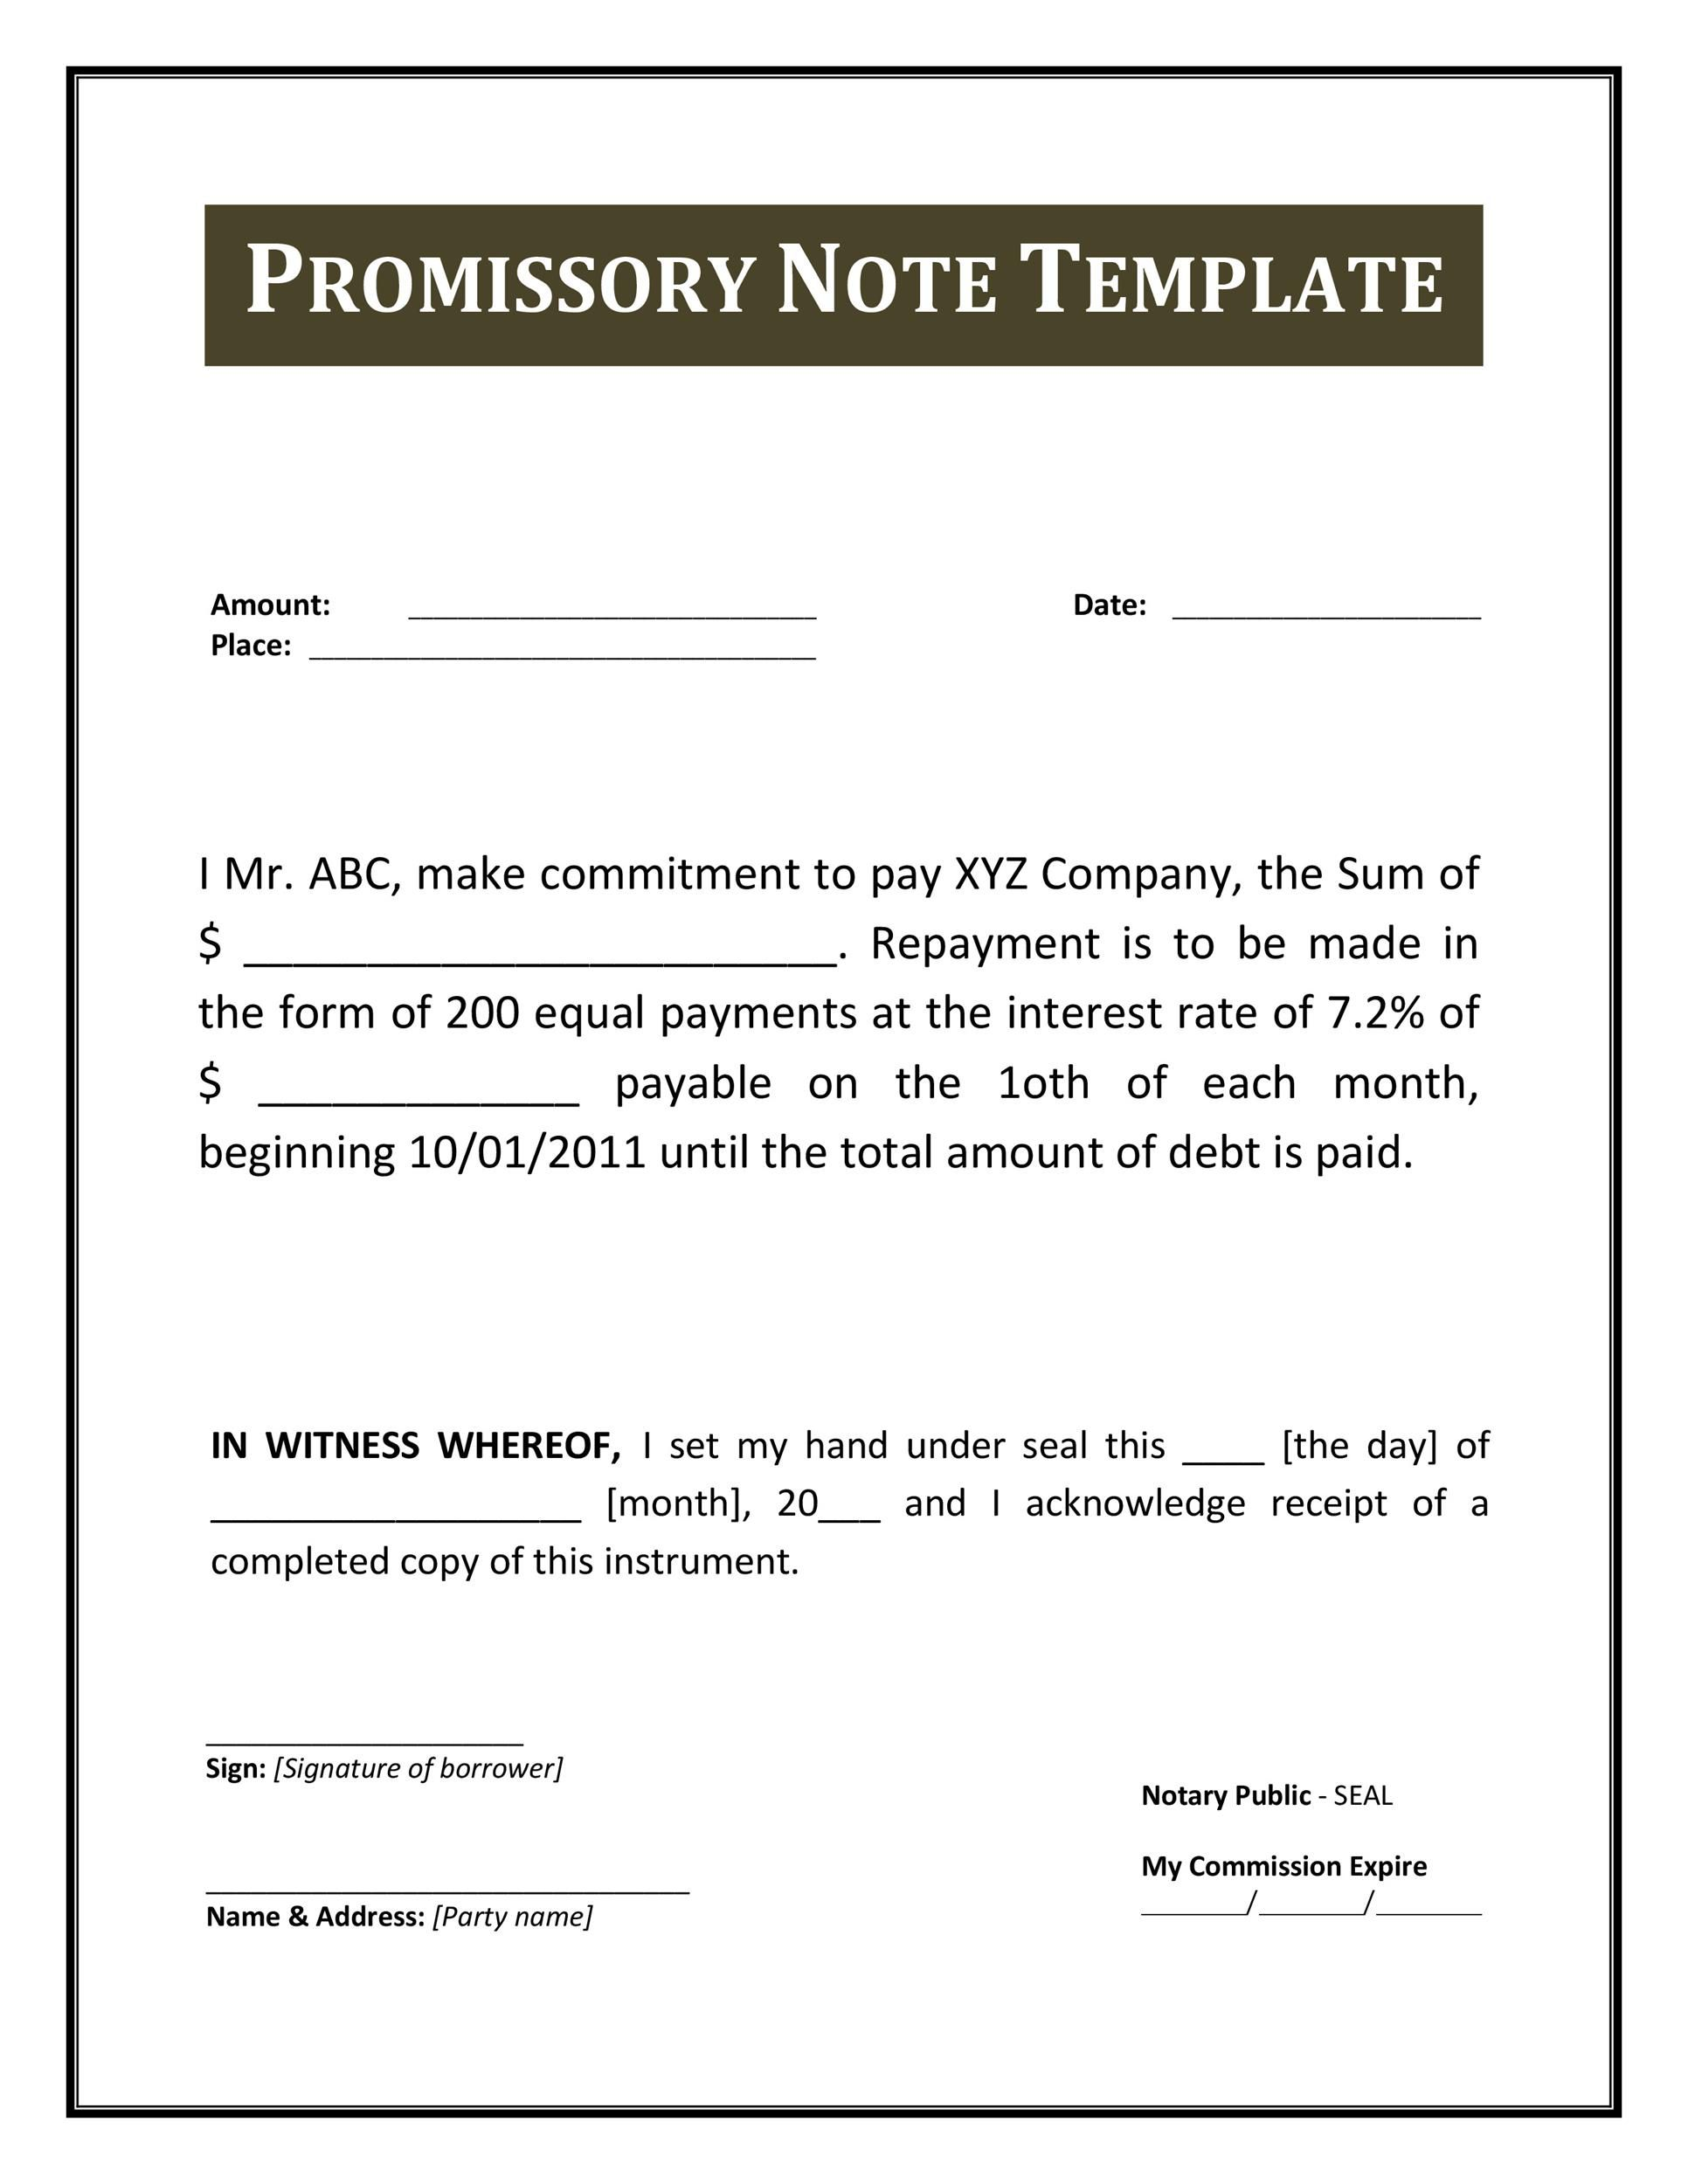 003 Incredible Promissory Note Word Template Design  2007 Document Uk IndiaFull